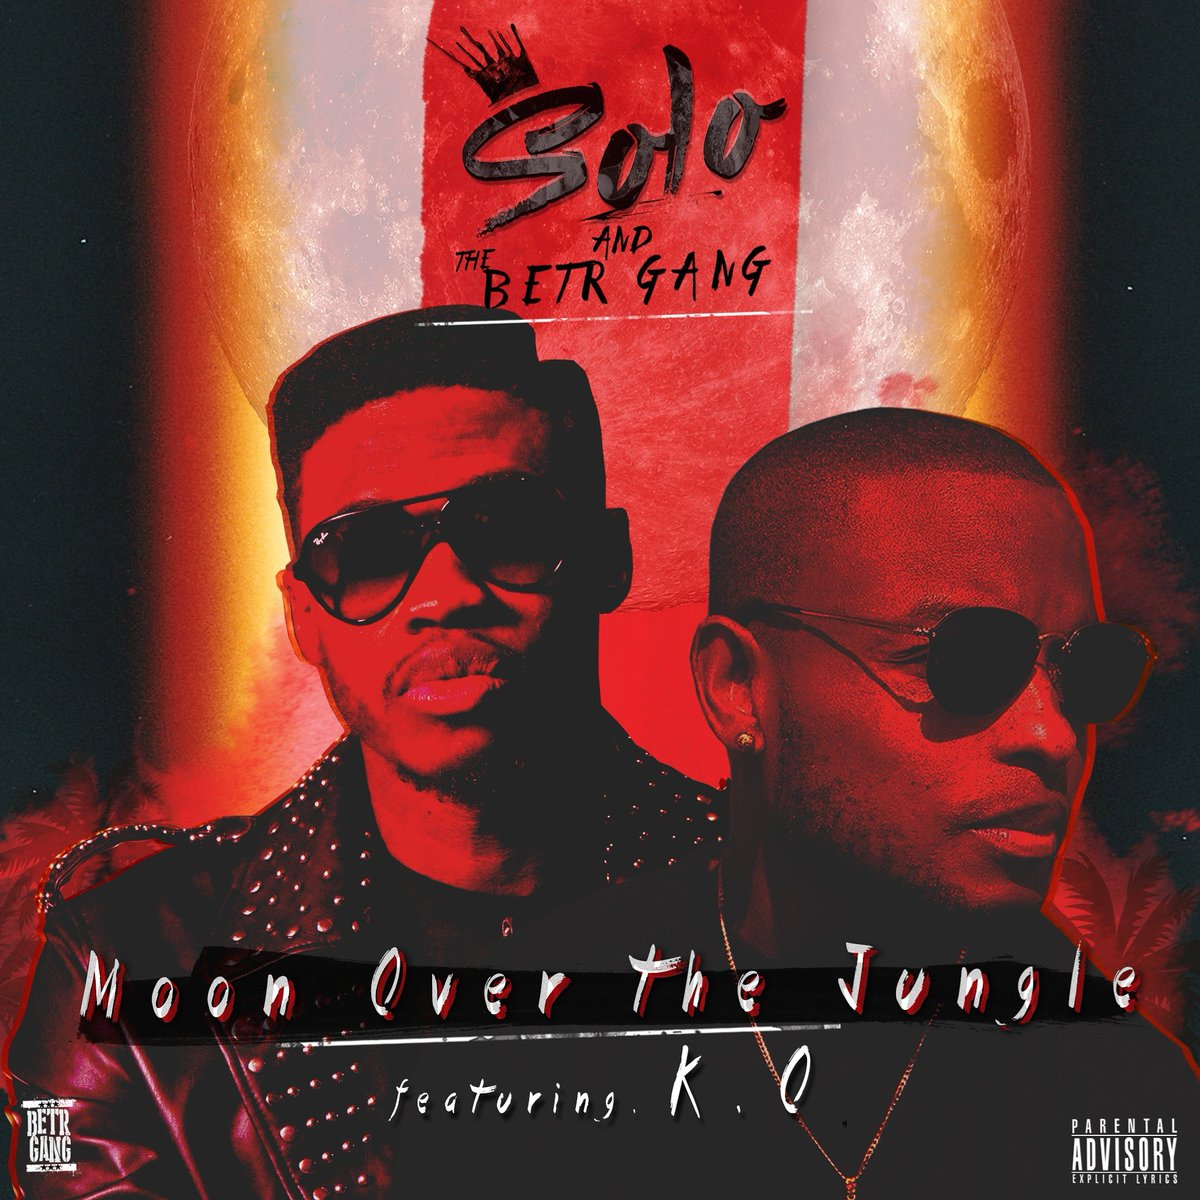 Solo & The BETR Gang – Moon Over The Jungle Ft. K.O.